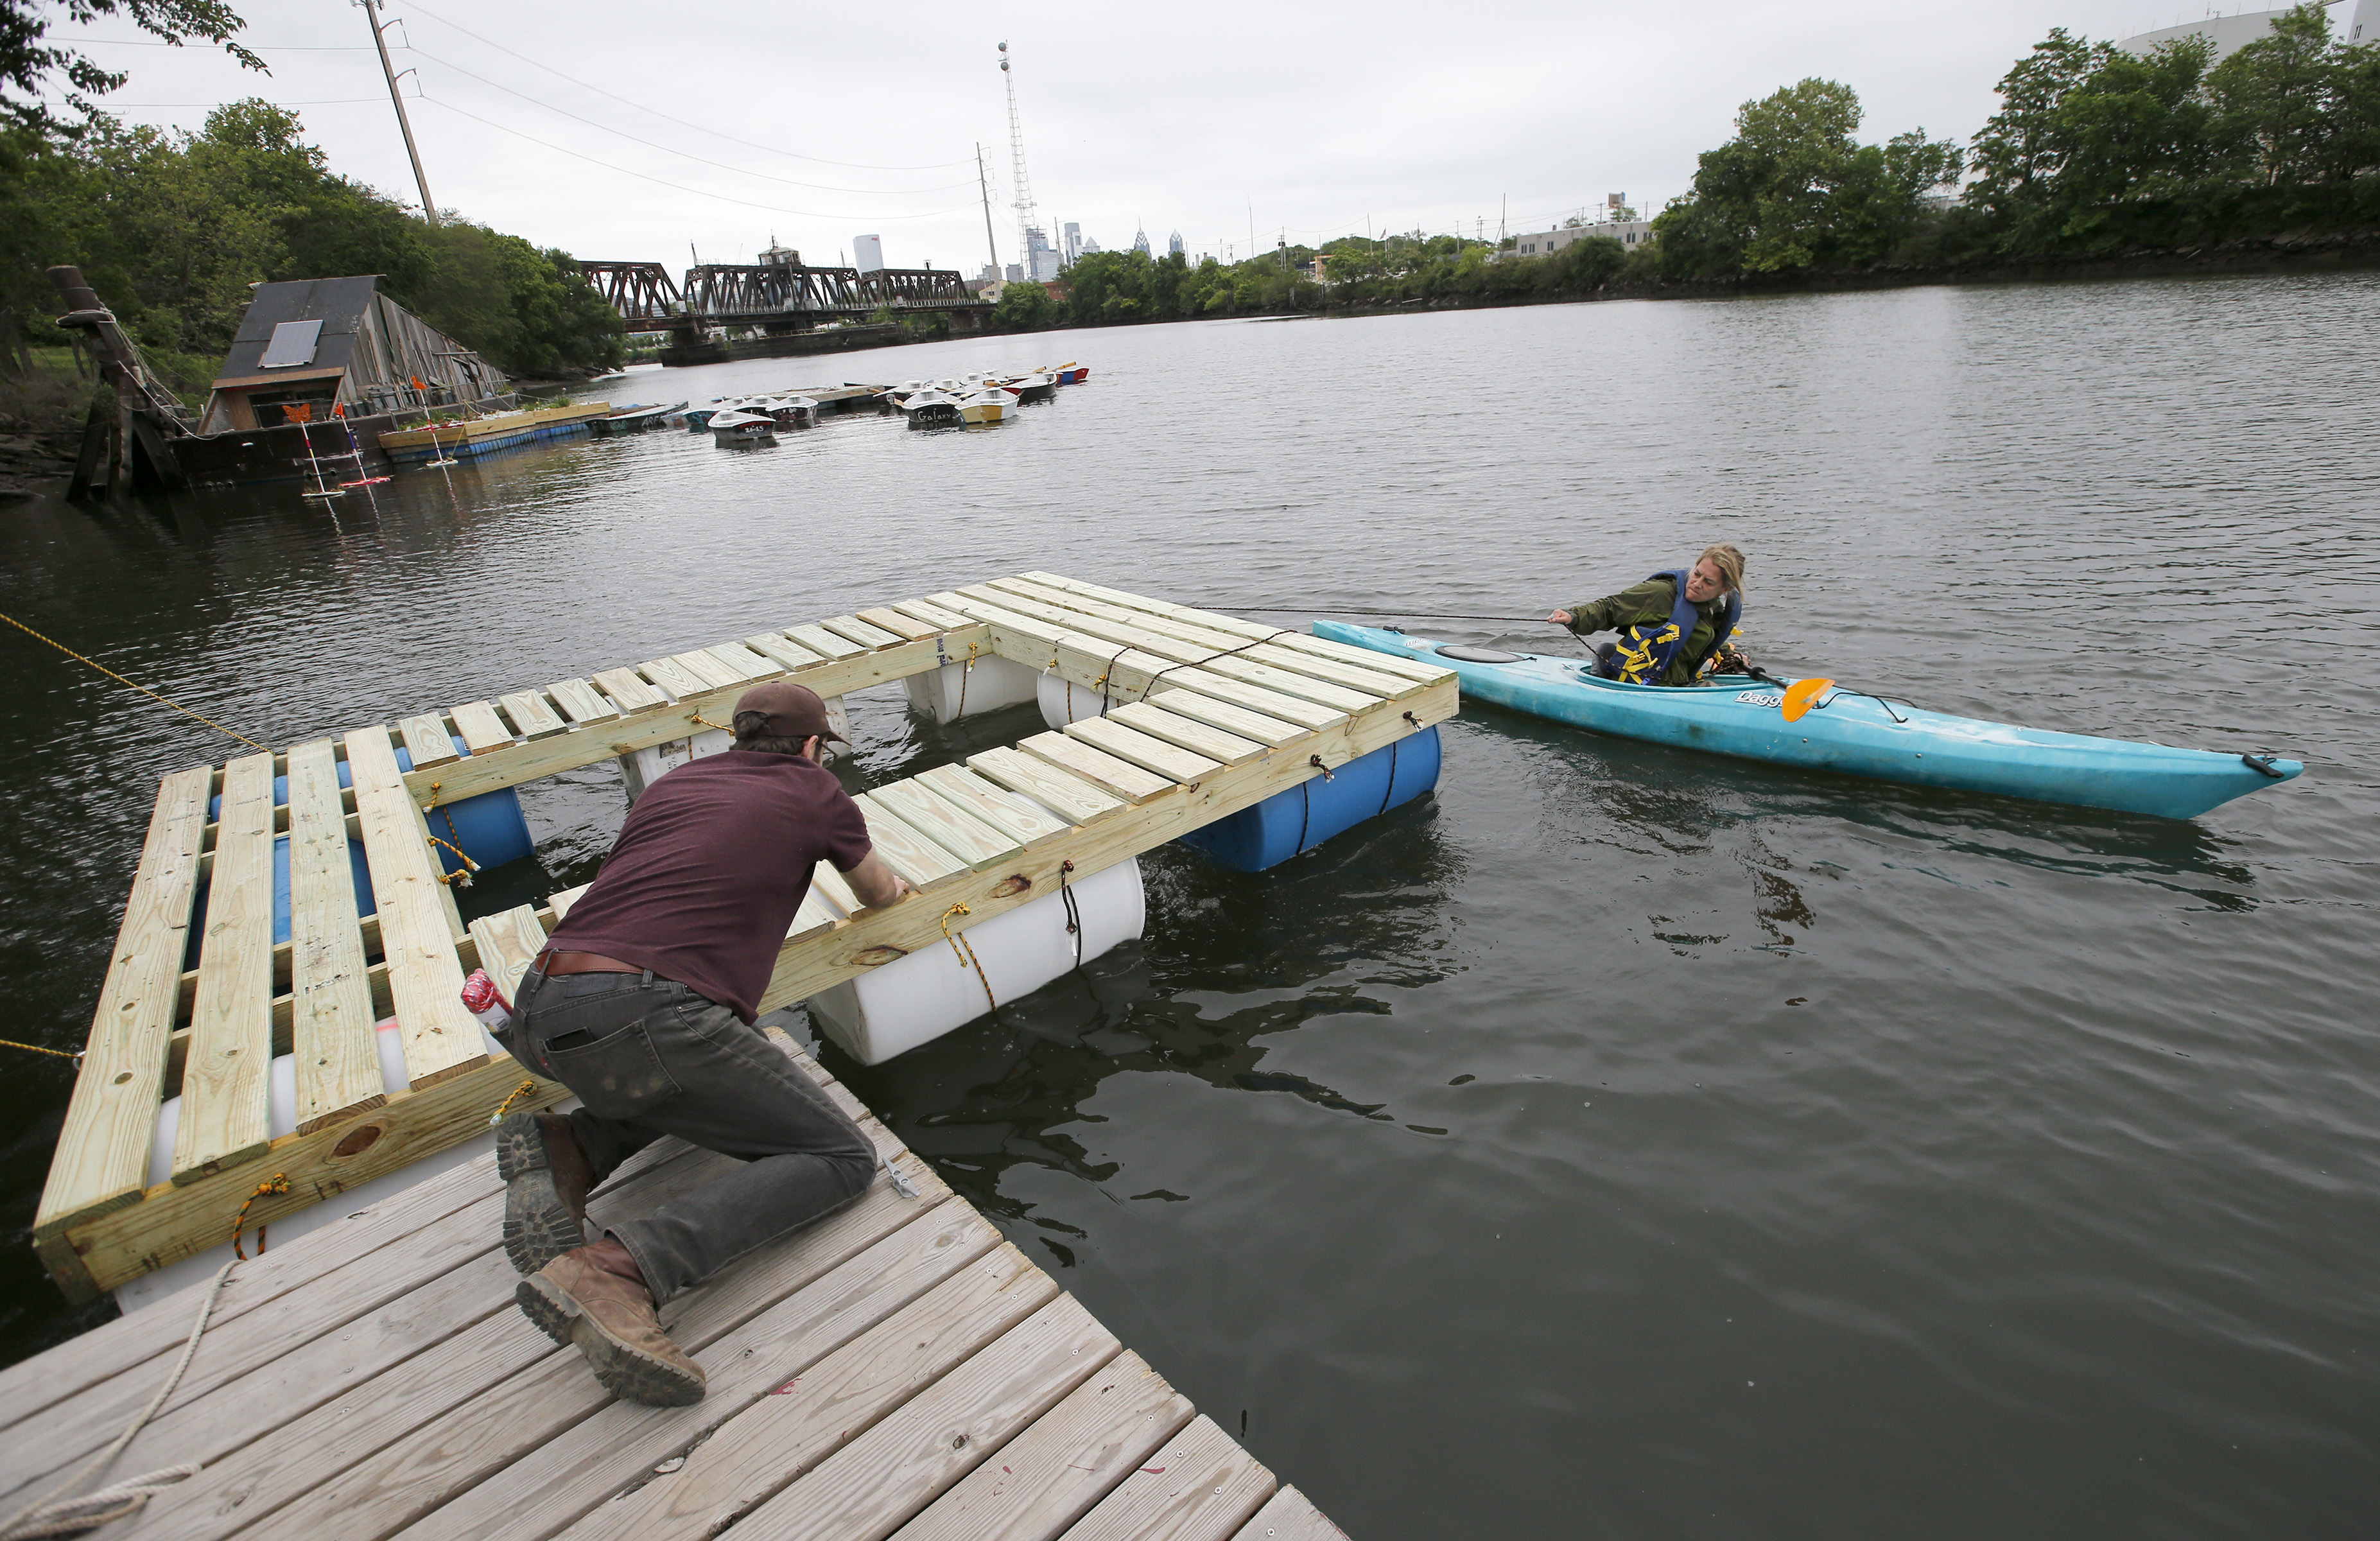 Bethany Wiggin (on the kayak) helps Jacob Rivkin place the Bio Pool in the Schuylkill River at the Bartram's Garden Community Boathouse. The University of Pennsylvania Program in the Environmental Humanities launched a biochar-based floating filter to clean the river. YONG KIM / Staff Photographer